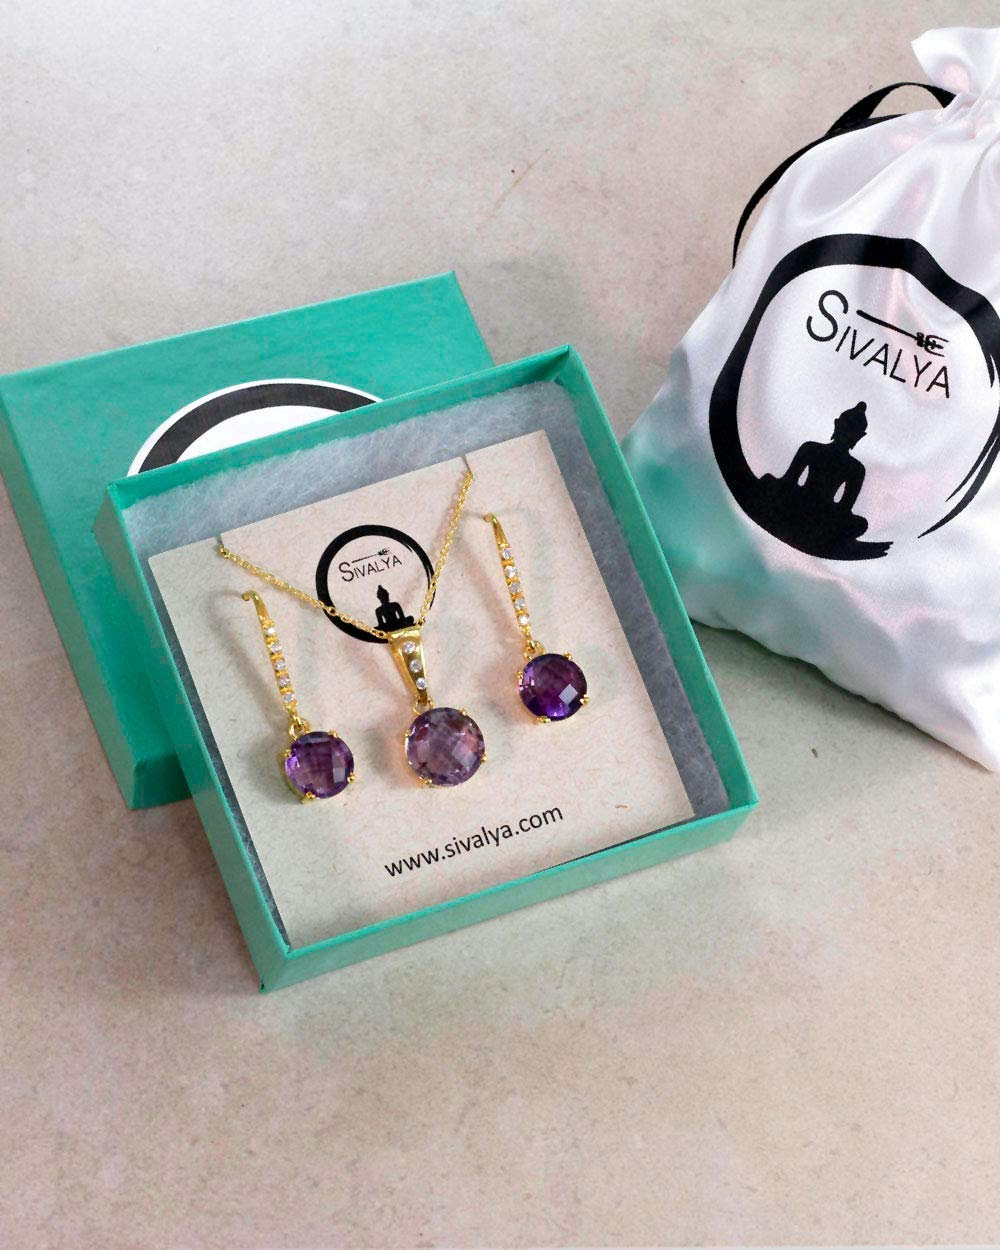 SIVALYA 925 Sterling Silver Amethyst Necklace and Earrings Jewelry Set in Gold Vermeil - Luxury Gift Packaging Included - Gift for Women